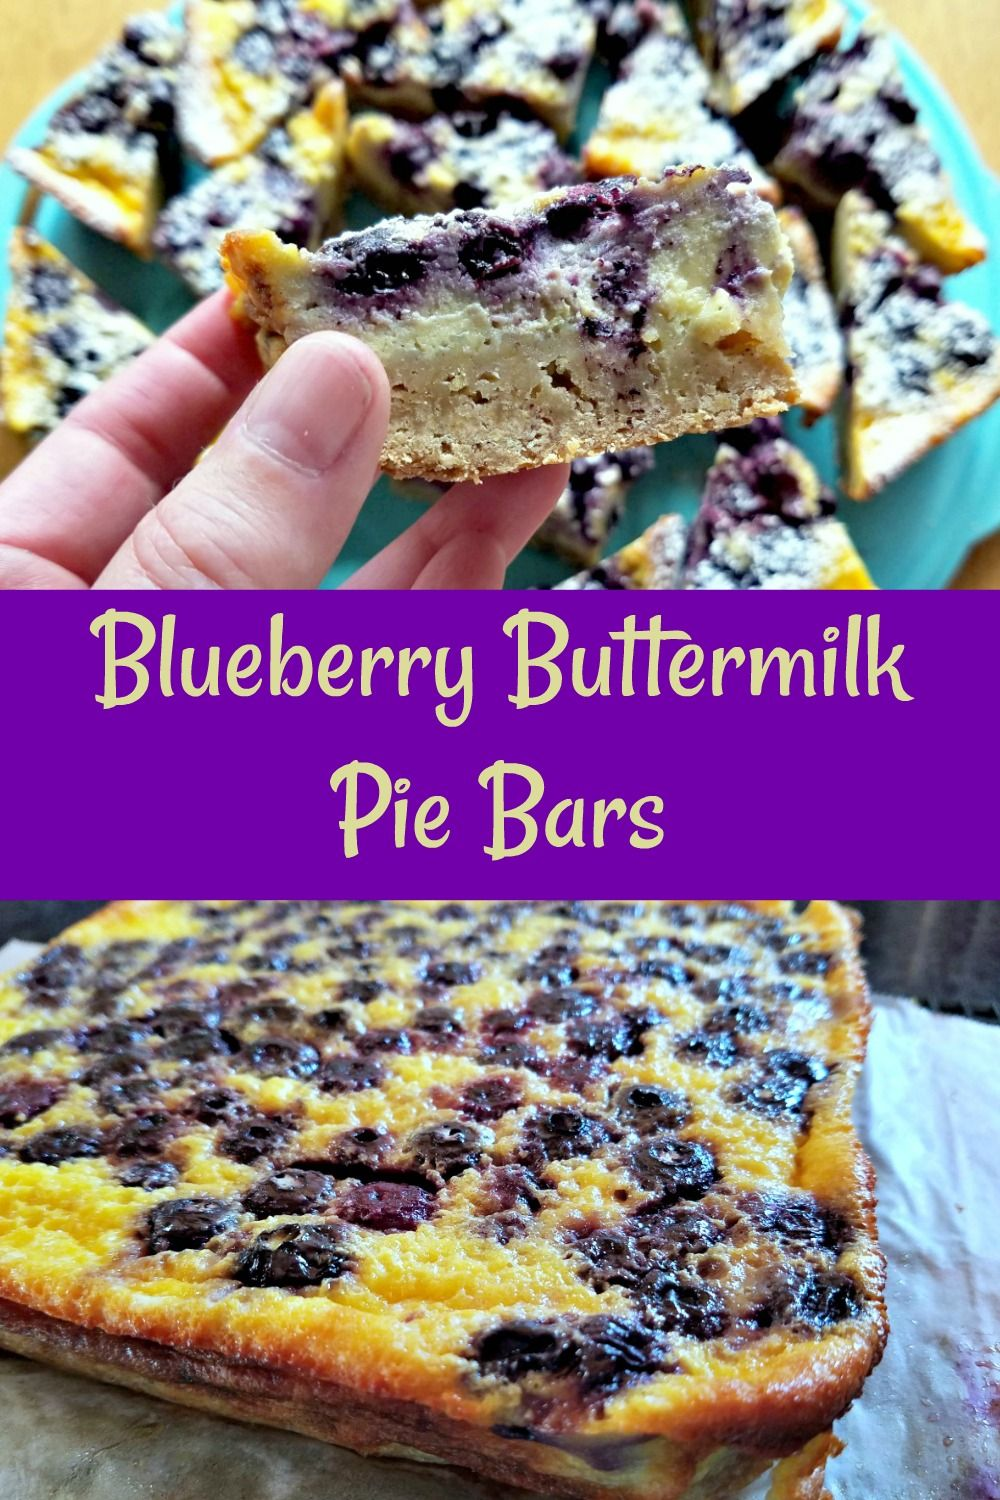 Blueberry Buttermilk Pie Bars Recipe Frozen Blueberry Recipes Blueberry Recipes Fun Baking Recipes